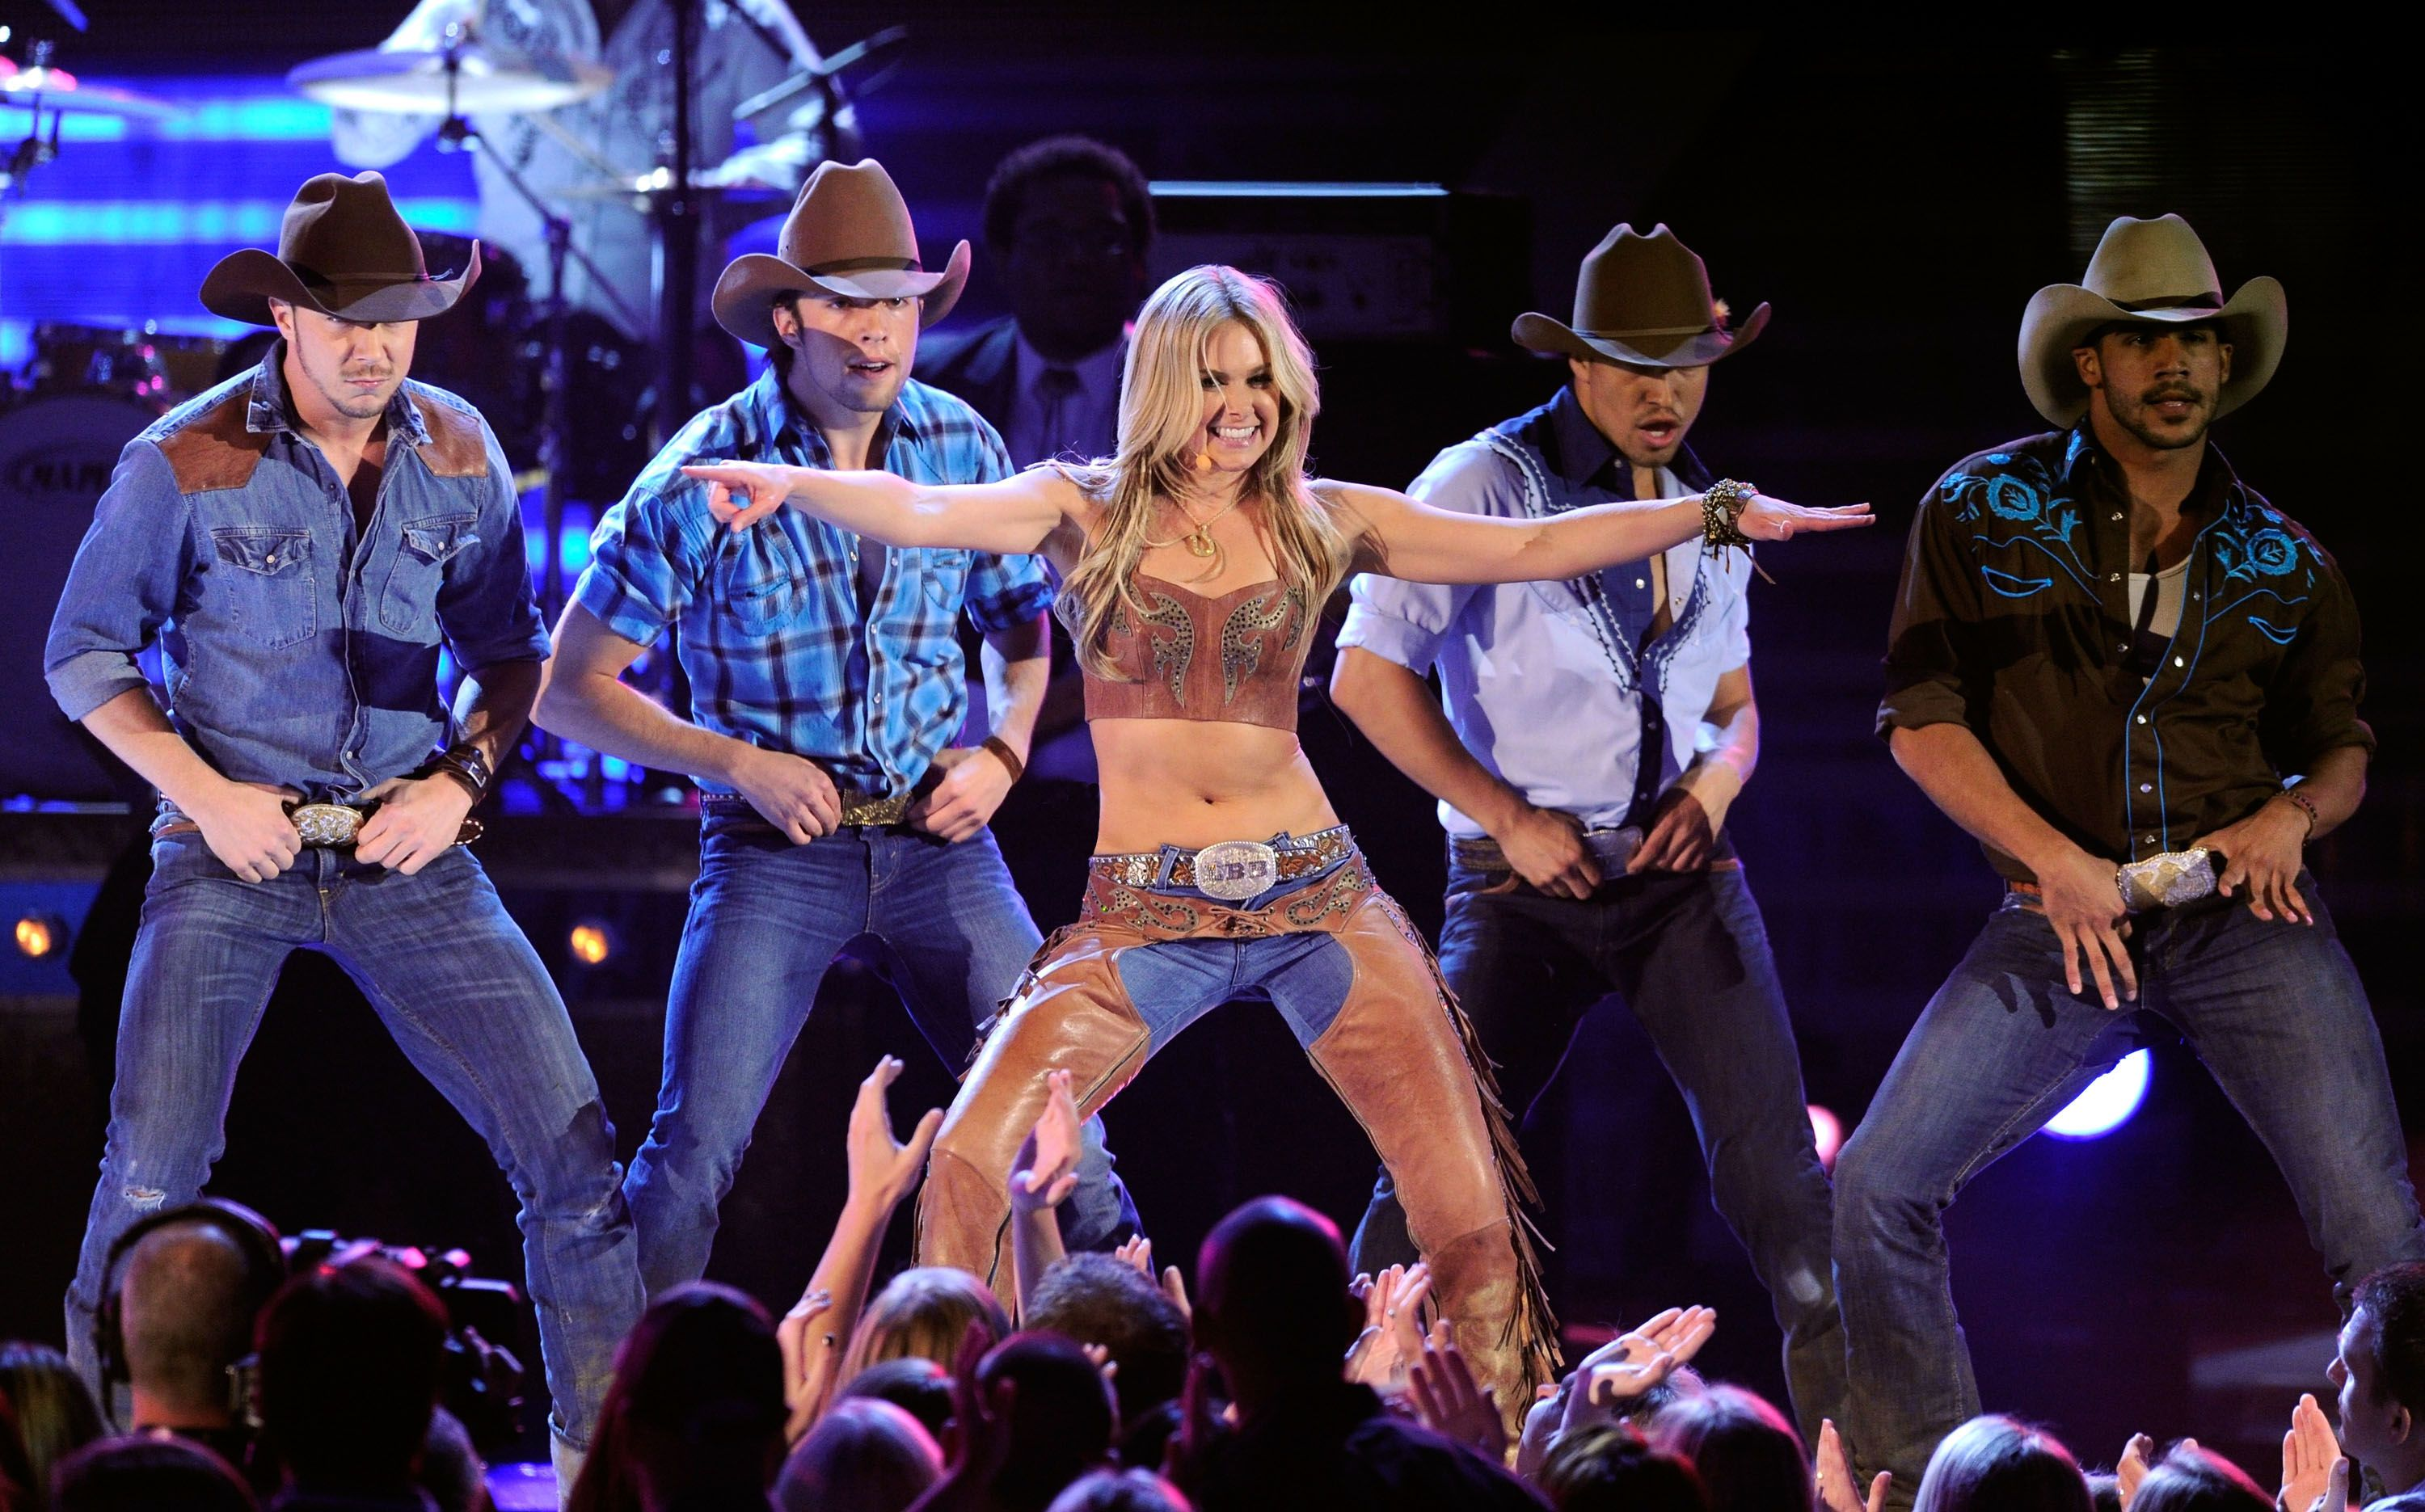 Laura bell bundy cowgirl